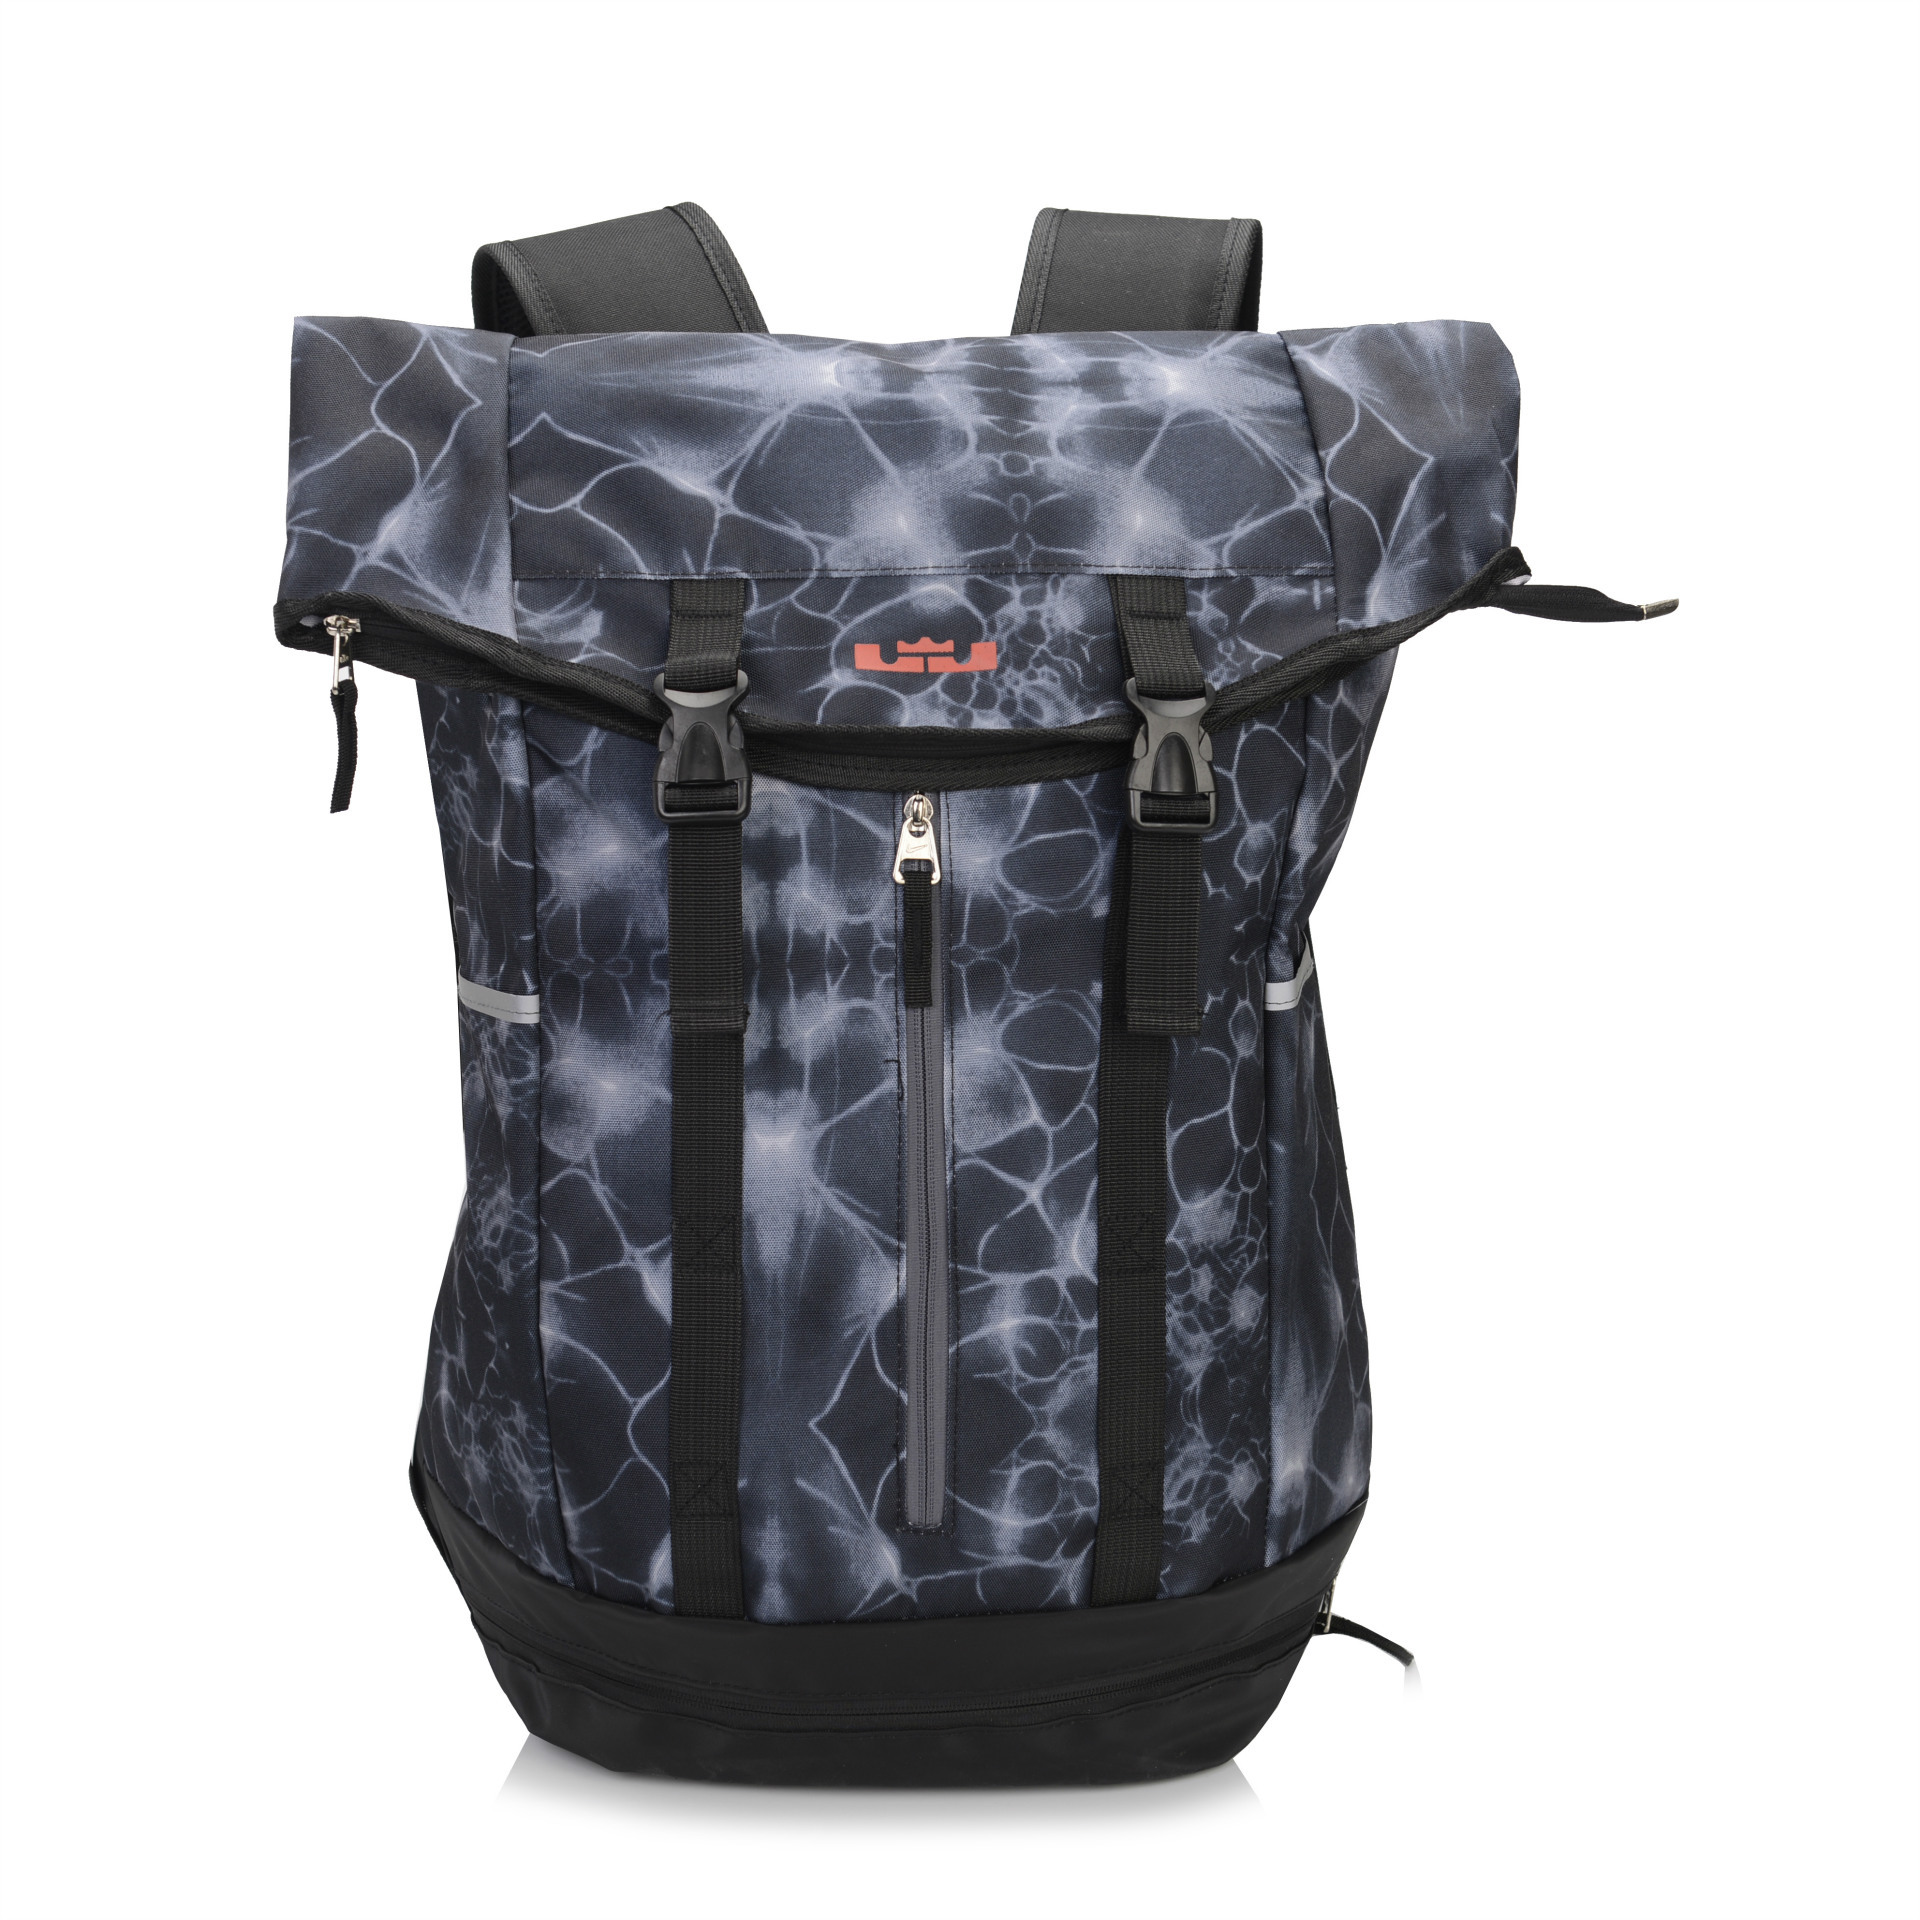 Backpack Backpack Mountaineering Bag Basketball Bag Outdoor Mountaineering Bag Leisure Sports Backpack 5